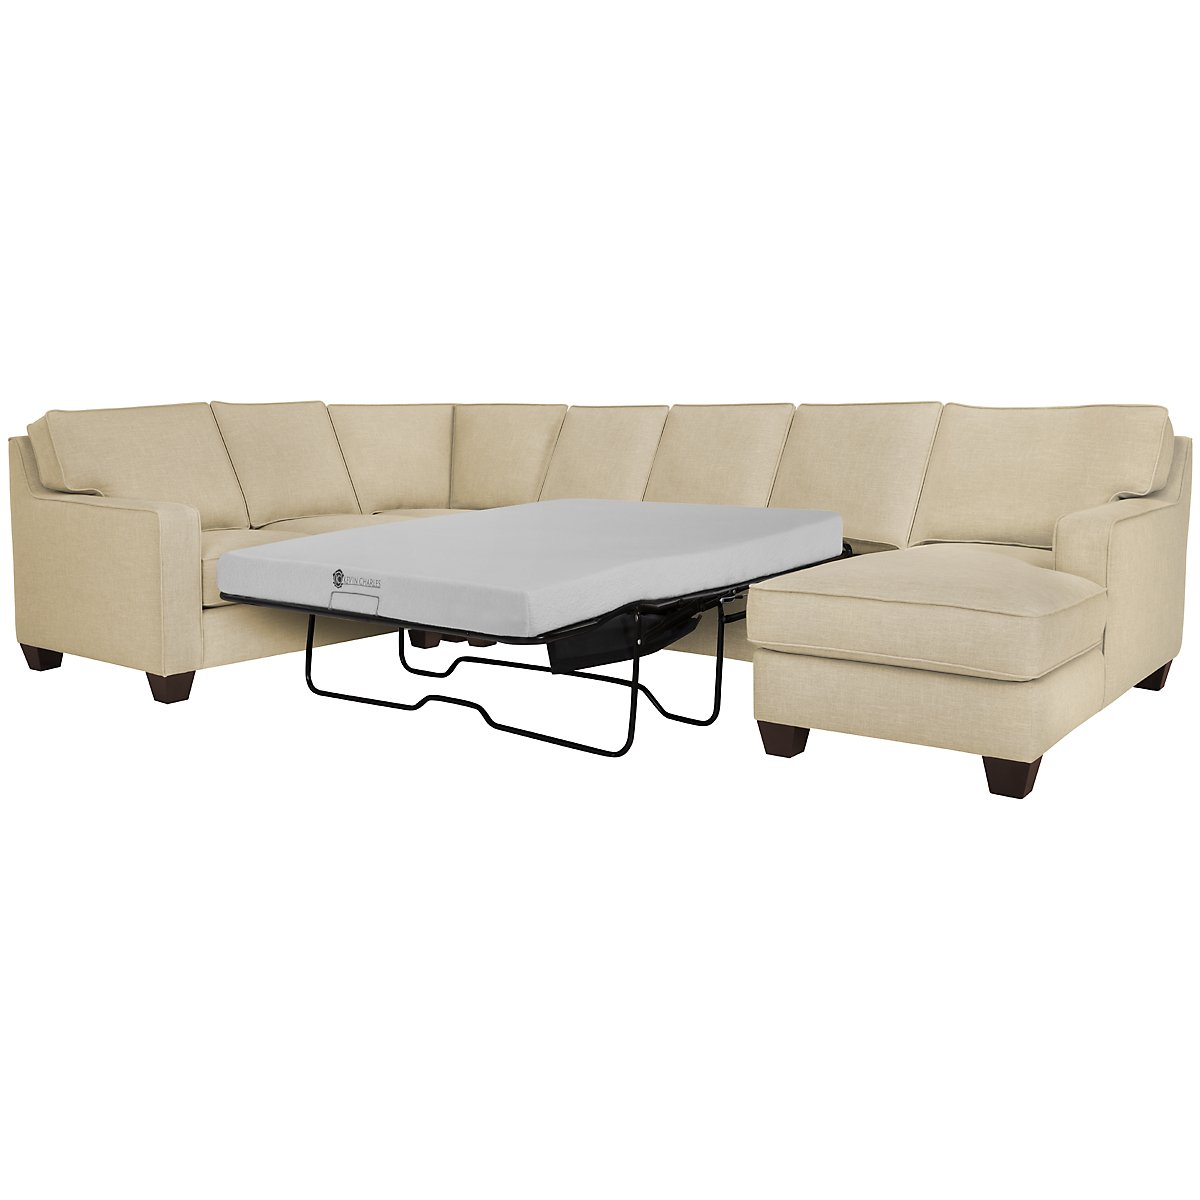 City furniture york beige fabric right chaise memory foam for Beige sectional with chaise